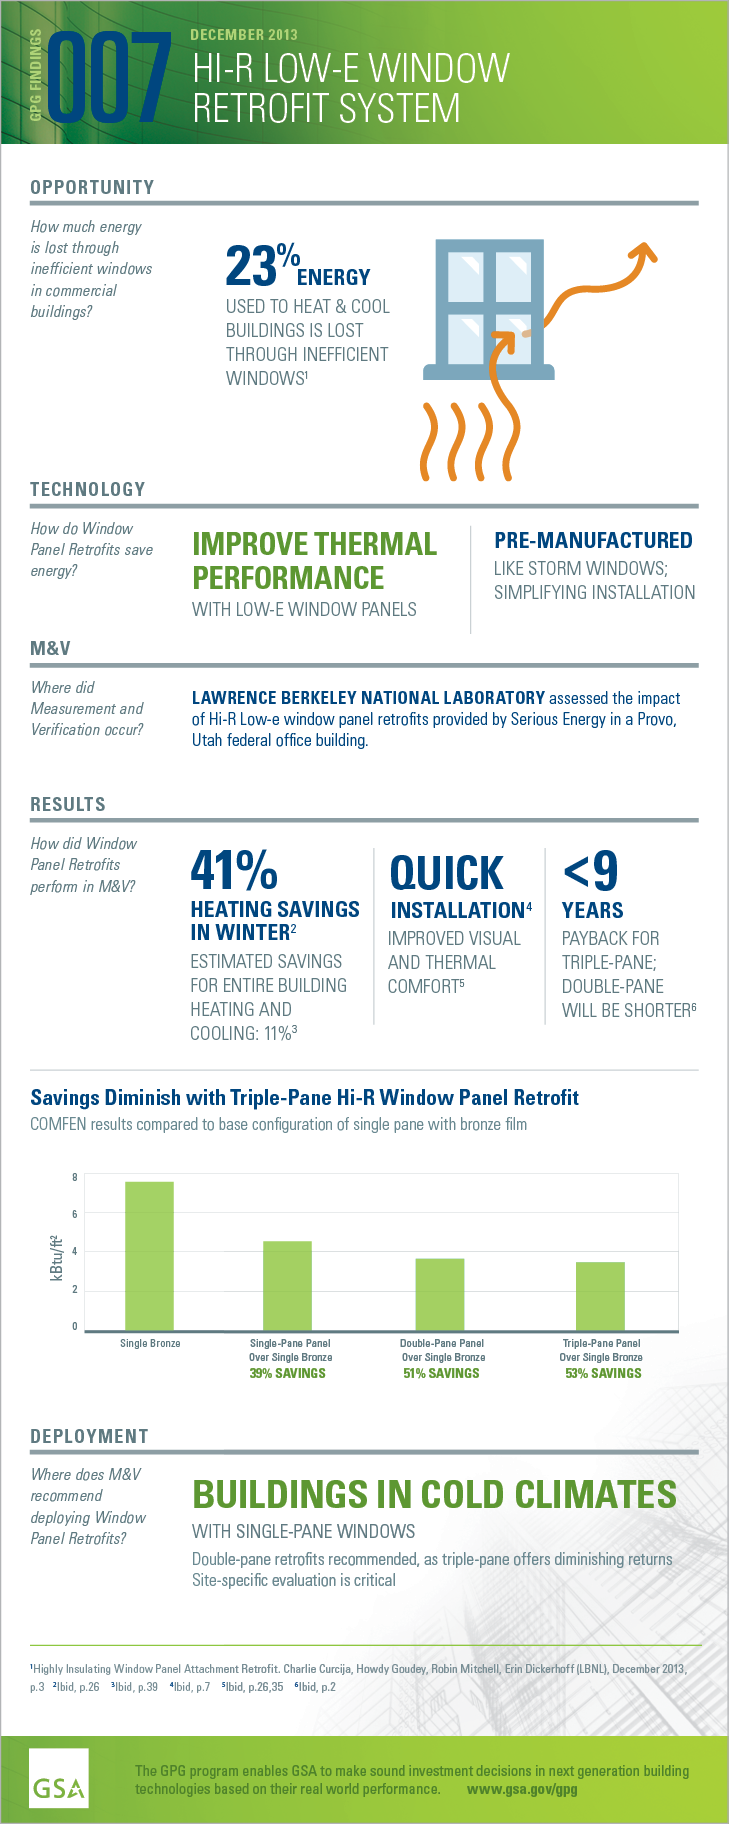 GPG Findings 007, December 2013, Highly Insulating Window Panel Retrofit. Opportunity: How much energy is lost through inefficient windows in commercial buildings? 23% energy used to heat and cool buildings is lost through inefficient windows. Technology: How do Hi-R Window Panel Retrofits save energy? Improve thermal performance with low-e window panels. Pre-manufactured like storm windows; simplifying installation. Measurement and Verification: Where did M and V occur? Lawrence Berkeley National Laboratory assessed the impact of Hi-R panel retrofits on heat-load reduction and employee comfort in Provo, Utah federal office building. Results: How did Hi-R Window Panel Retrofits perform in M and V? 41% heating savings in winter. Estimated savings for entire building heating and cooling: 11%. Quick installation. Improved visual and thermal comfort. Less than 9 years payback for triple-pane; double pane will be shorter. Deployment: Where does M and V recommend deploying Hi-R Window Panel Retrofits? Buildings in cold climates with single-pane windows. Double-pane retrofits recommended, as triple-pane offers diminishing returns. Site-specific evaluation is critical.